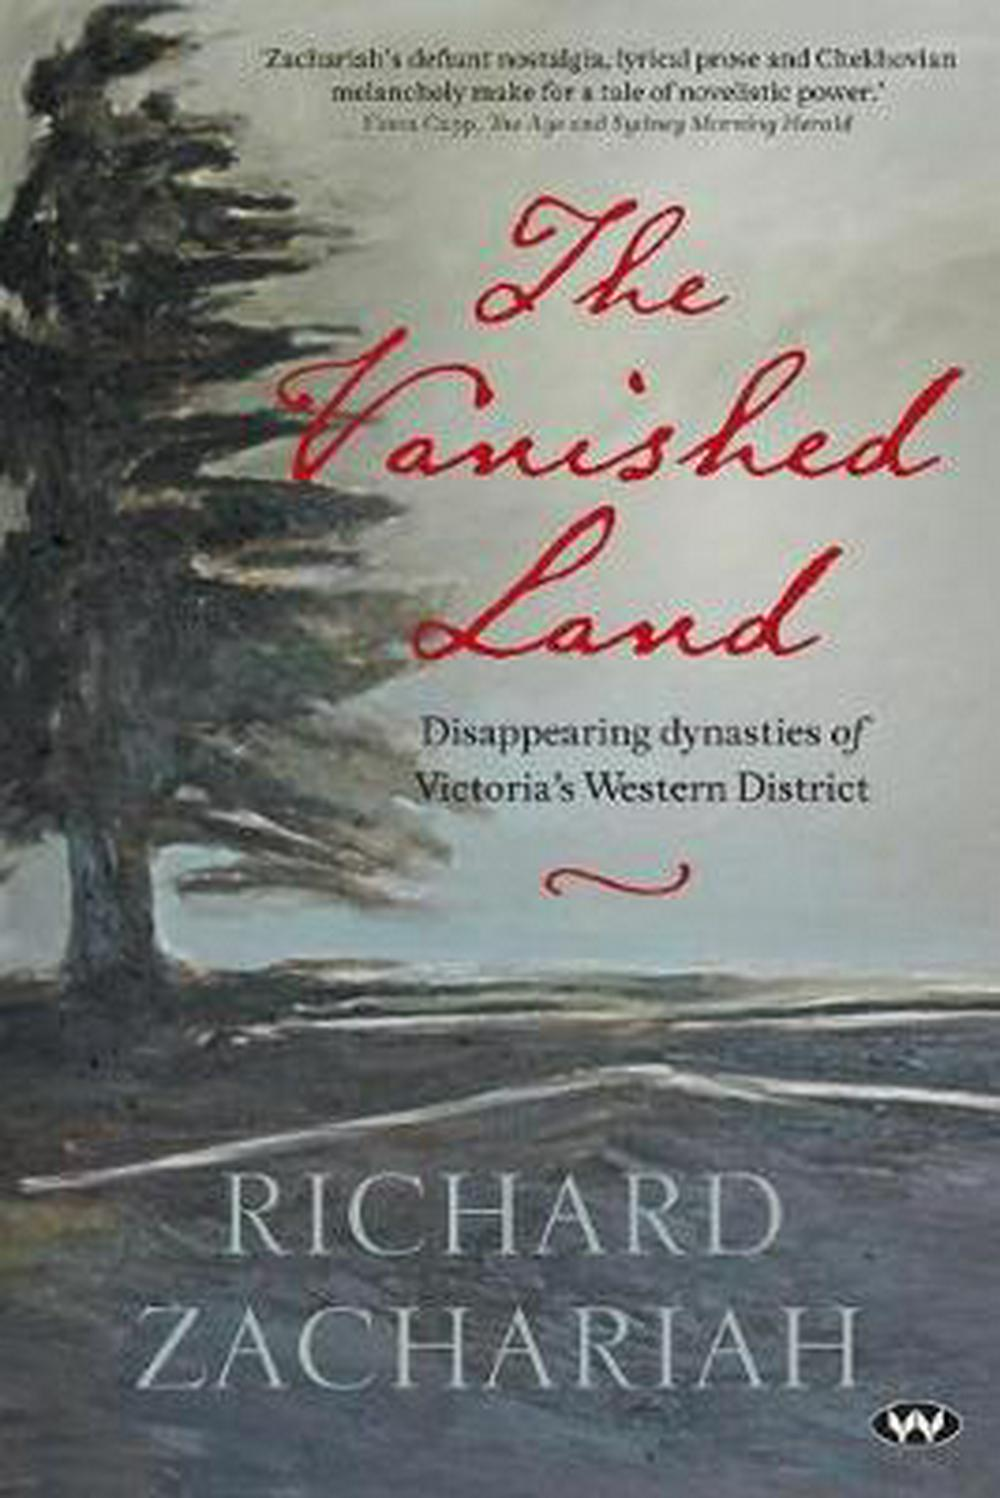 The Vanished Land: Disappearing dynasties of Victoria's Western District